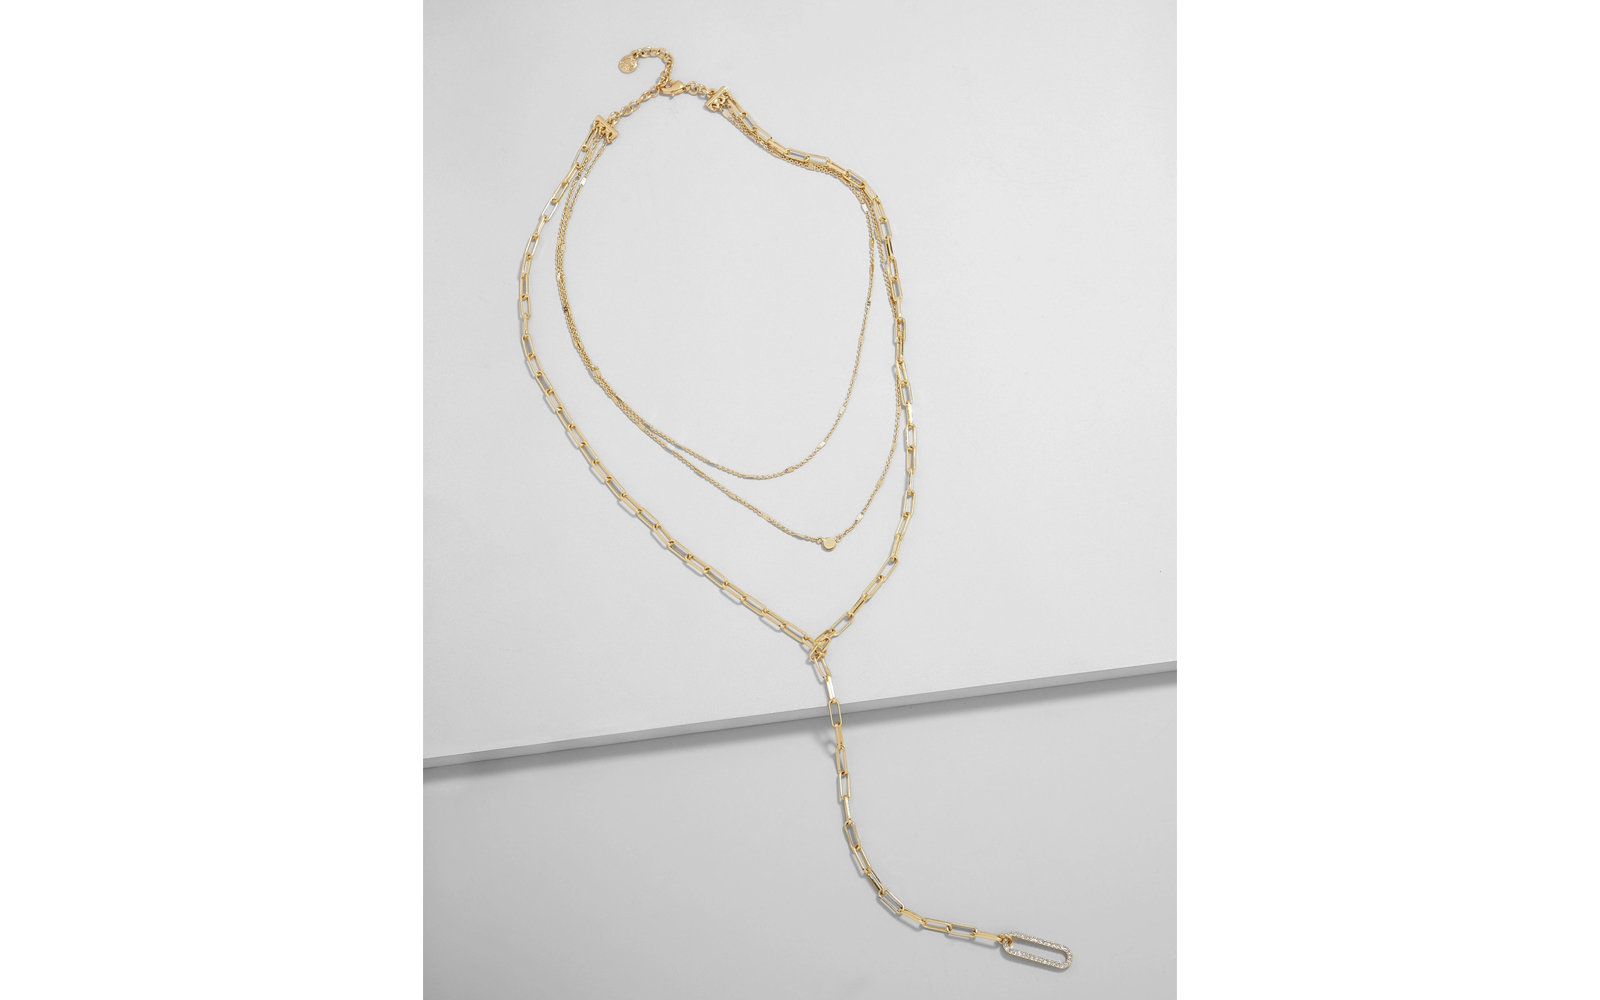 gold-layered-y-chain-necklace-BAUBLEFEST0418